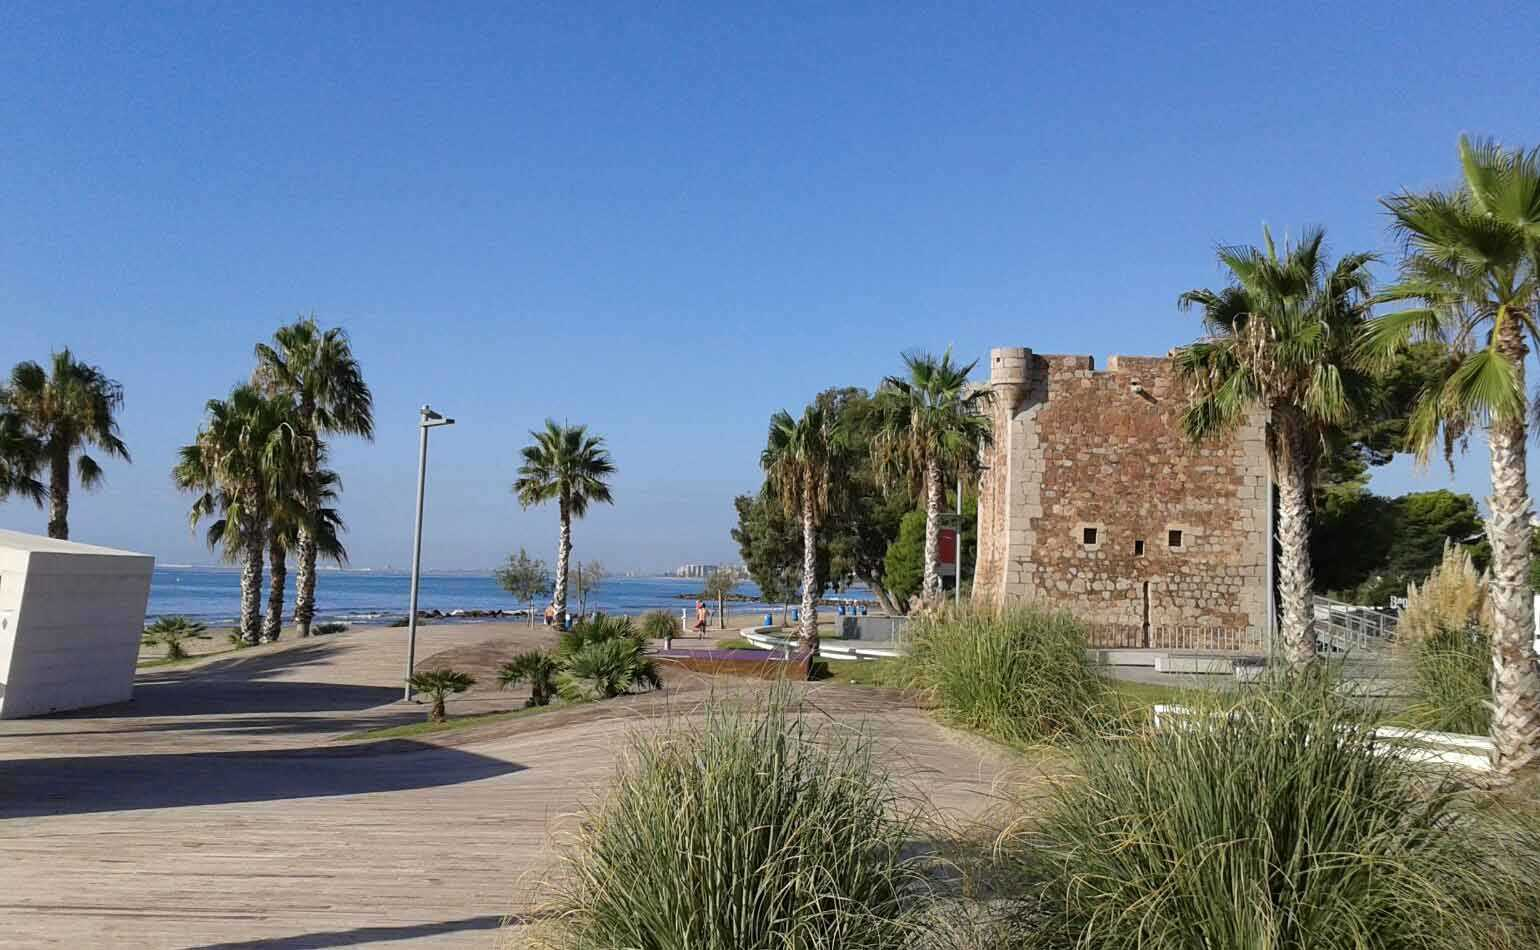 Playa Torre de Sant Vicent